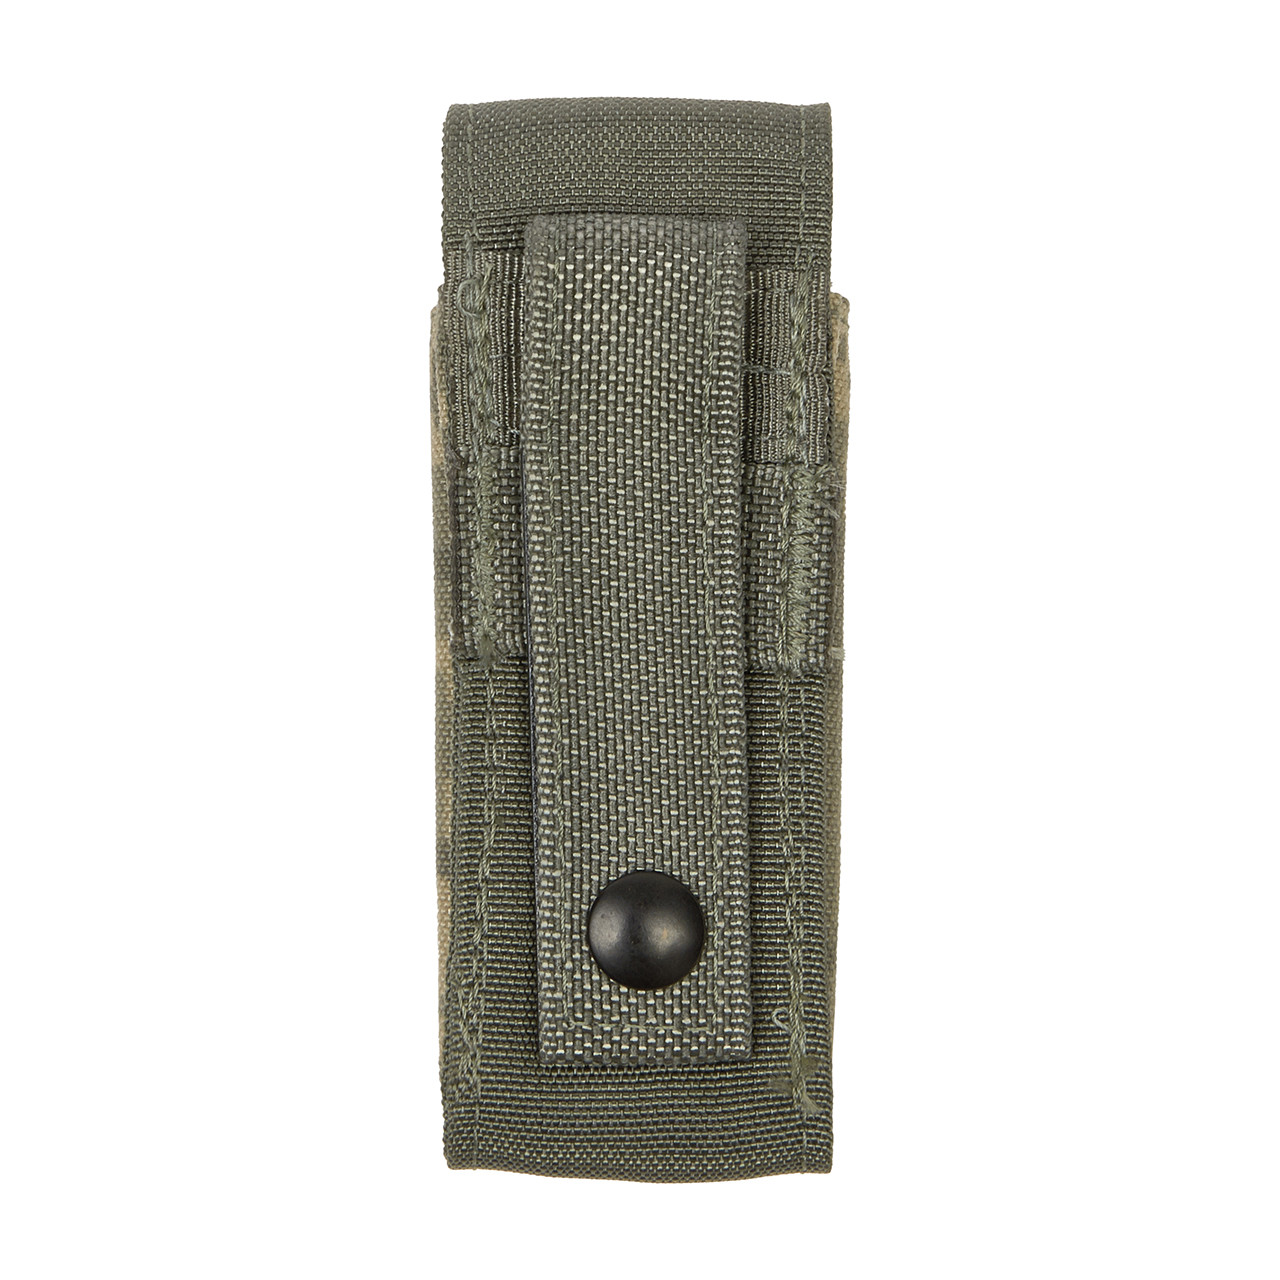 50871 GP / 9MM POUCH